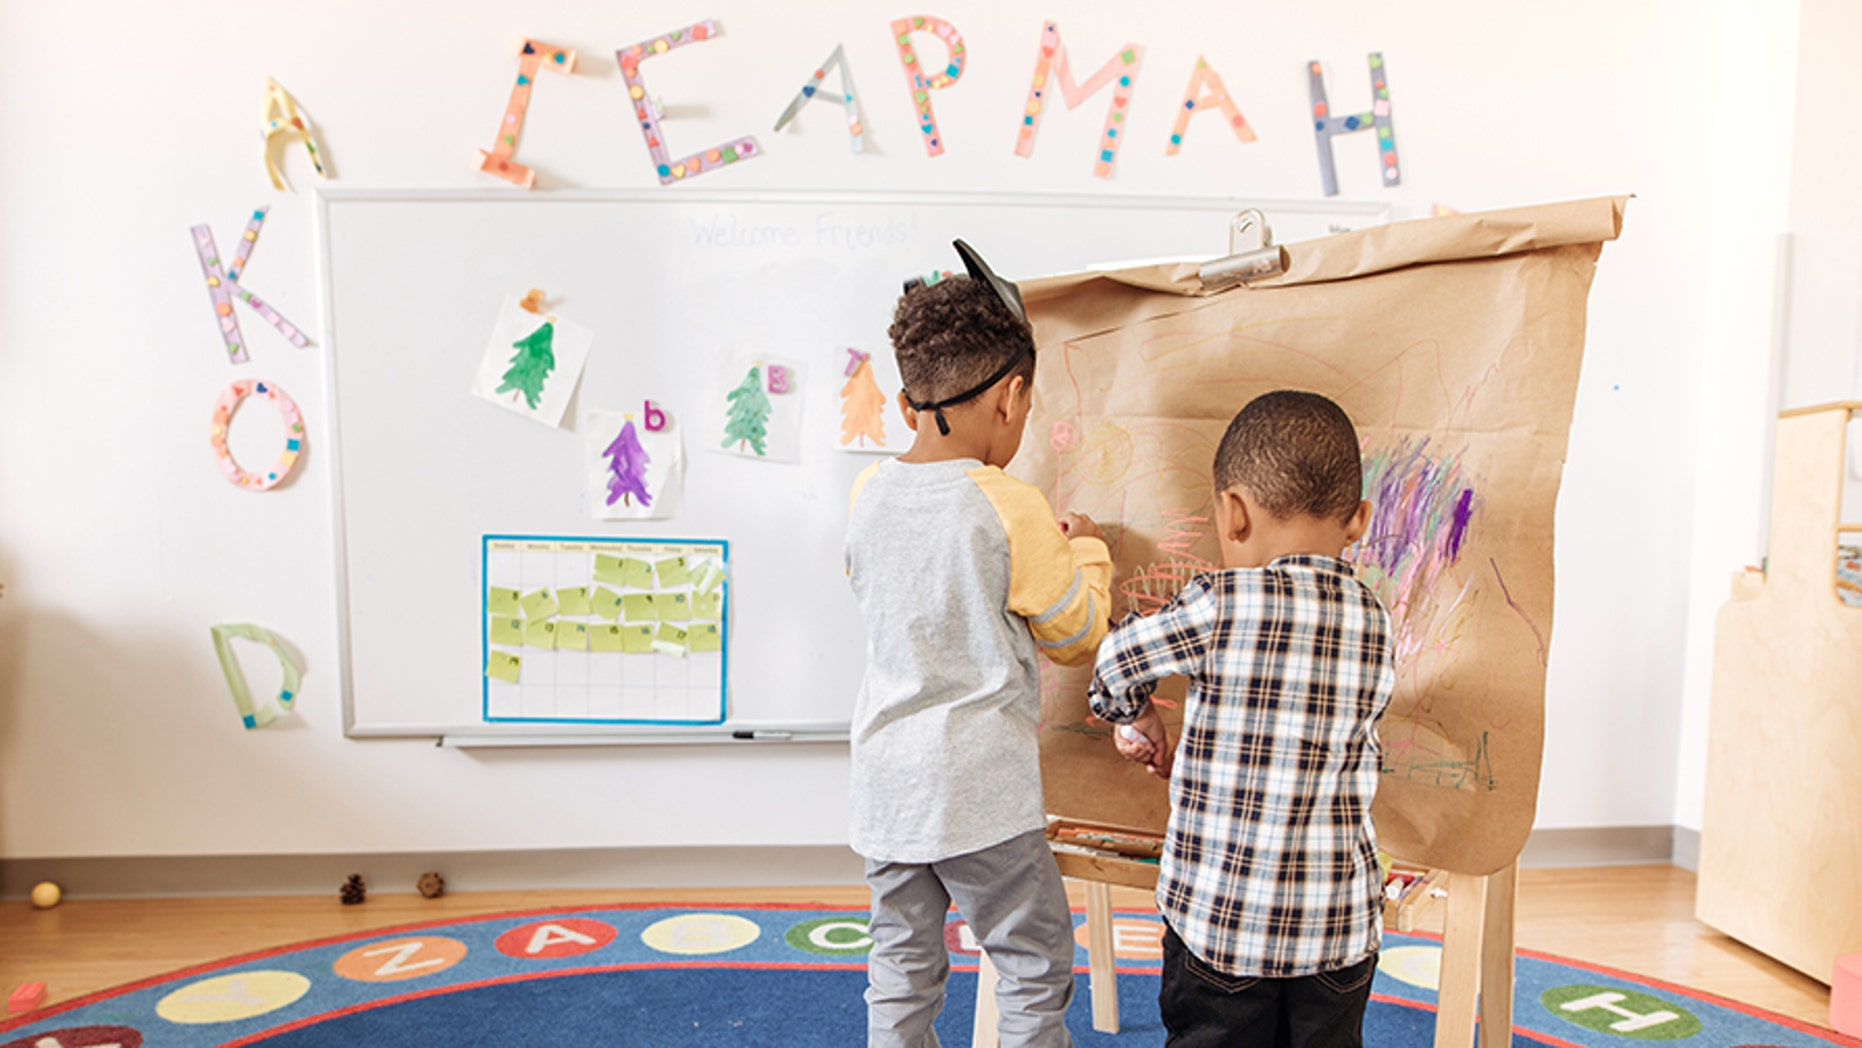 Could the costs of day care get even higher in Washington, D.C.?